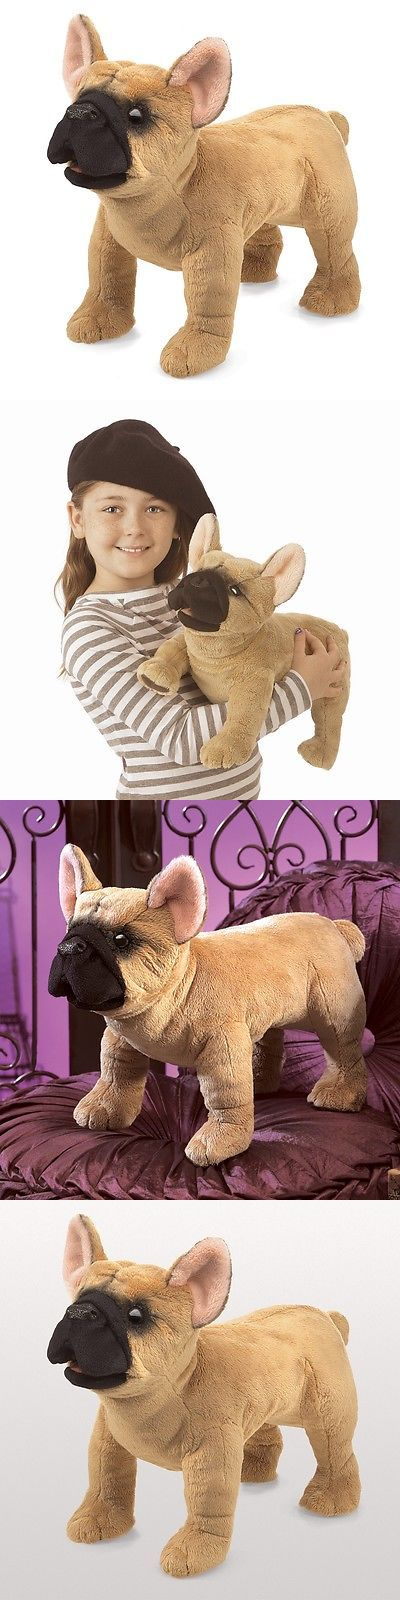 Puppets 19180 French Bulldog Puppet W Movable Mouth Folkmanis